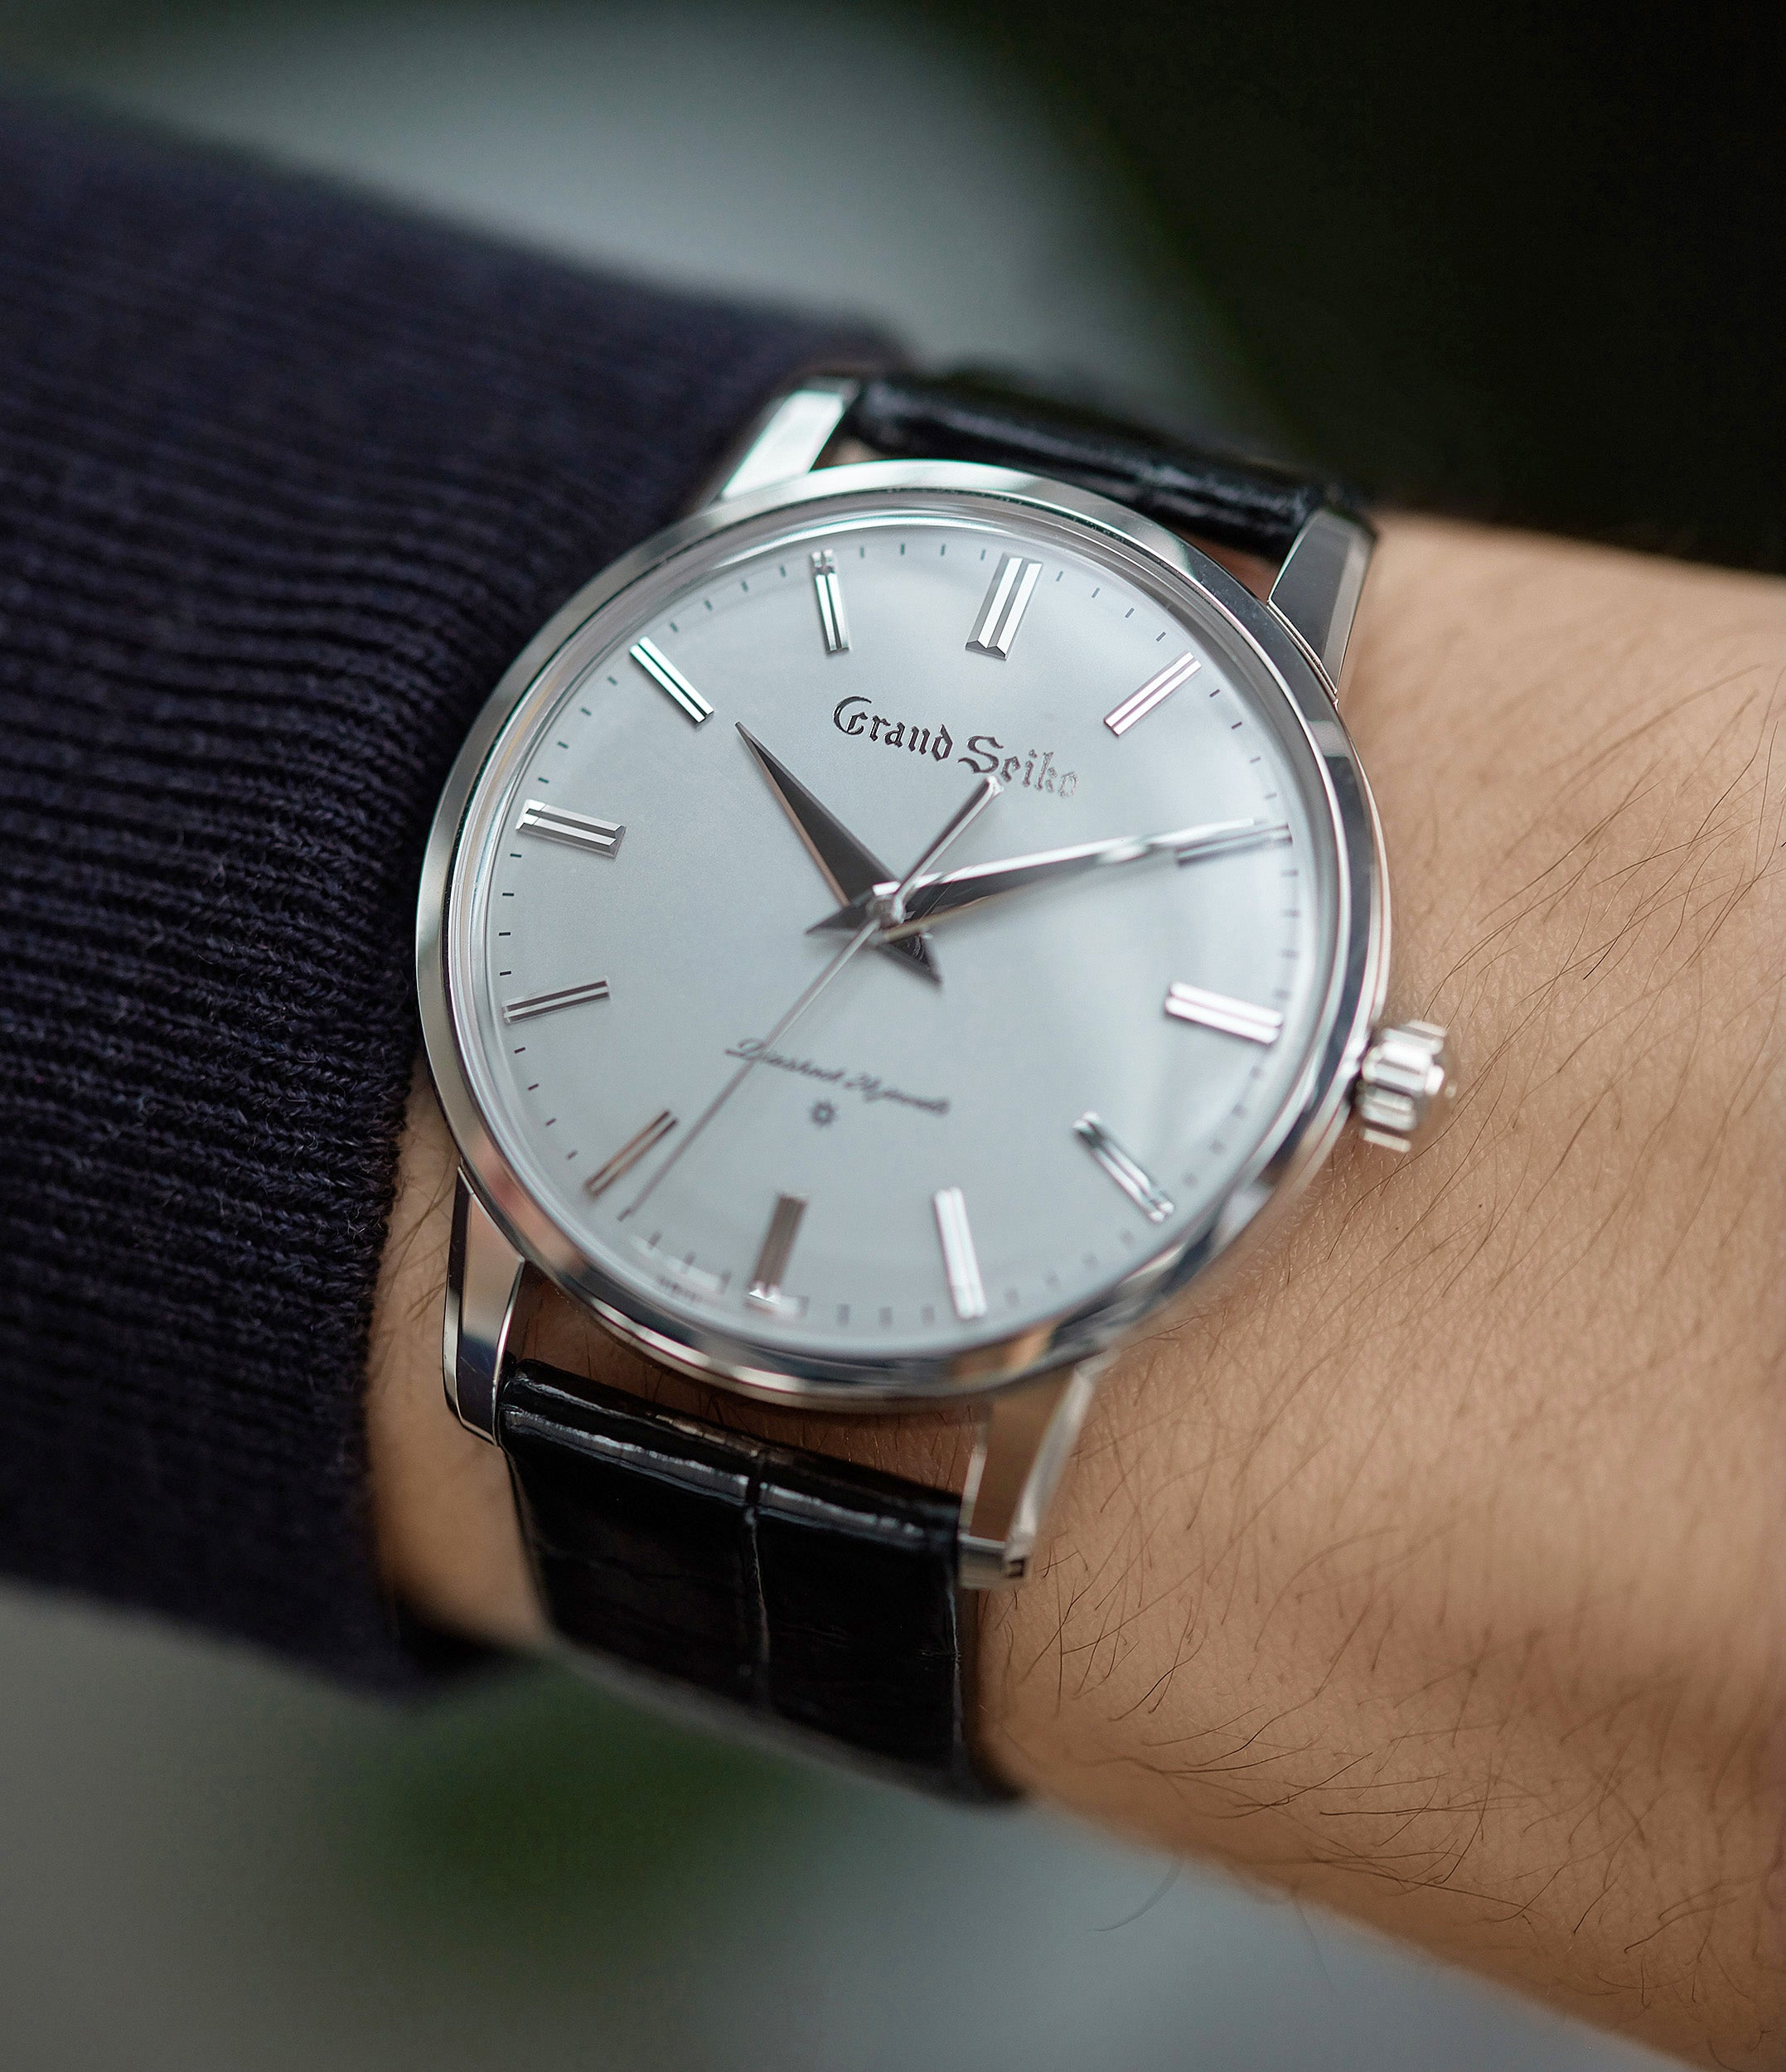 classic dress watch Grand Seiko SBGW251 limited edition platinum time-only dress watch Japanese-made full set at A Collected Man London UK specialist of rare watches